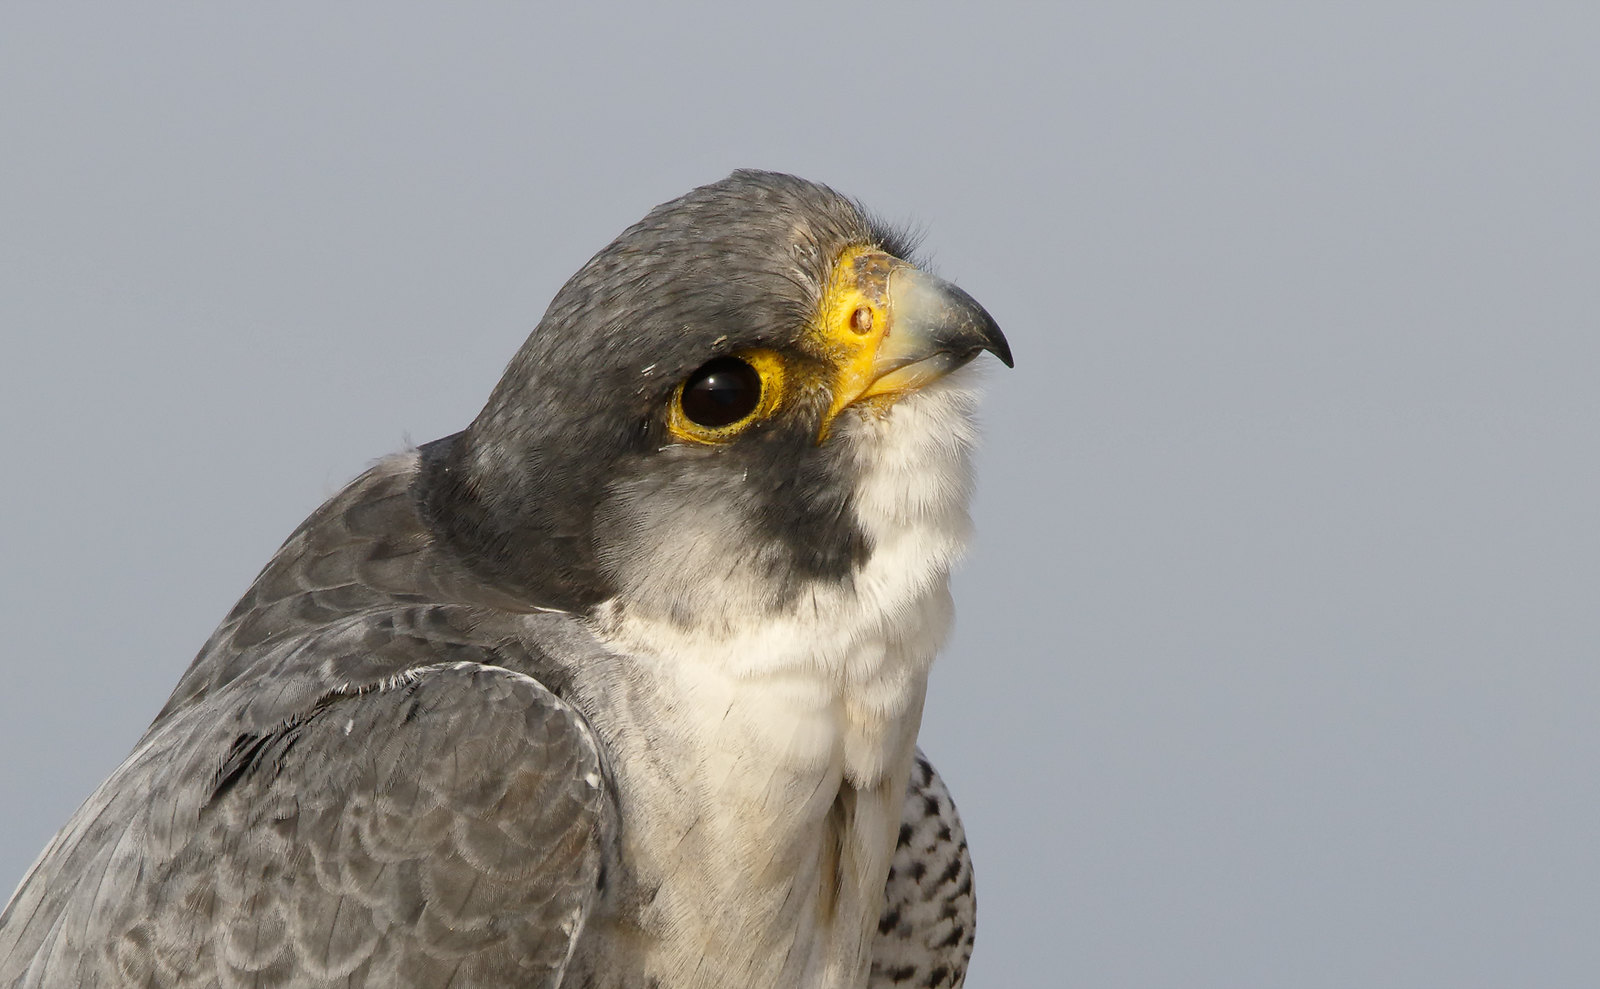 A very obliging Peregrine Falcon